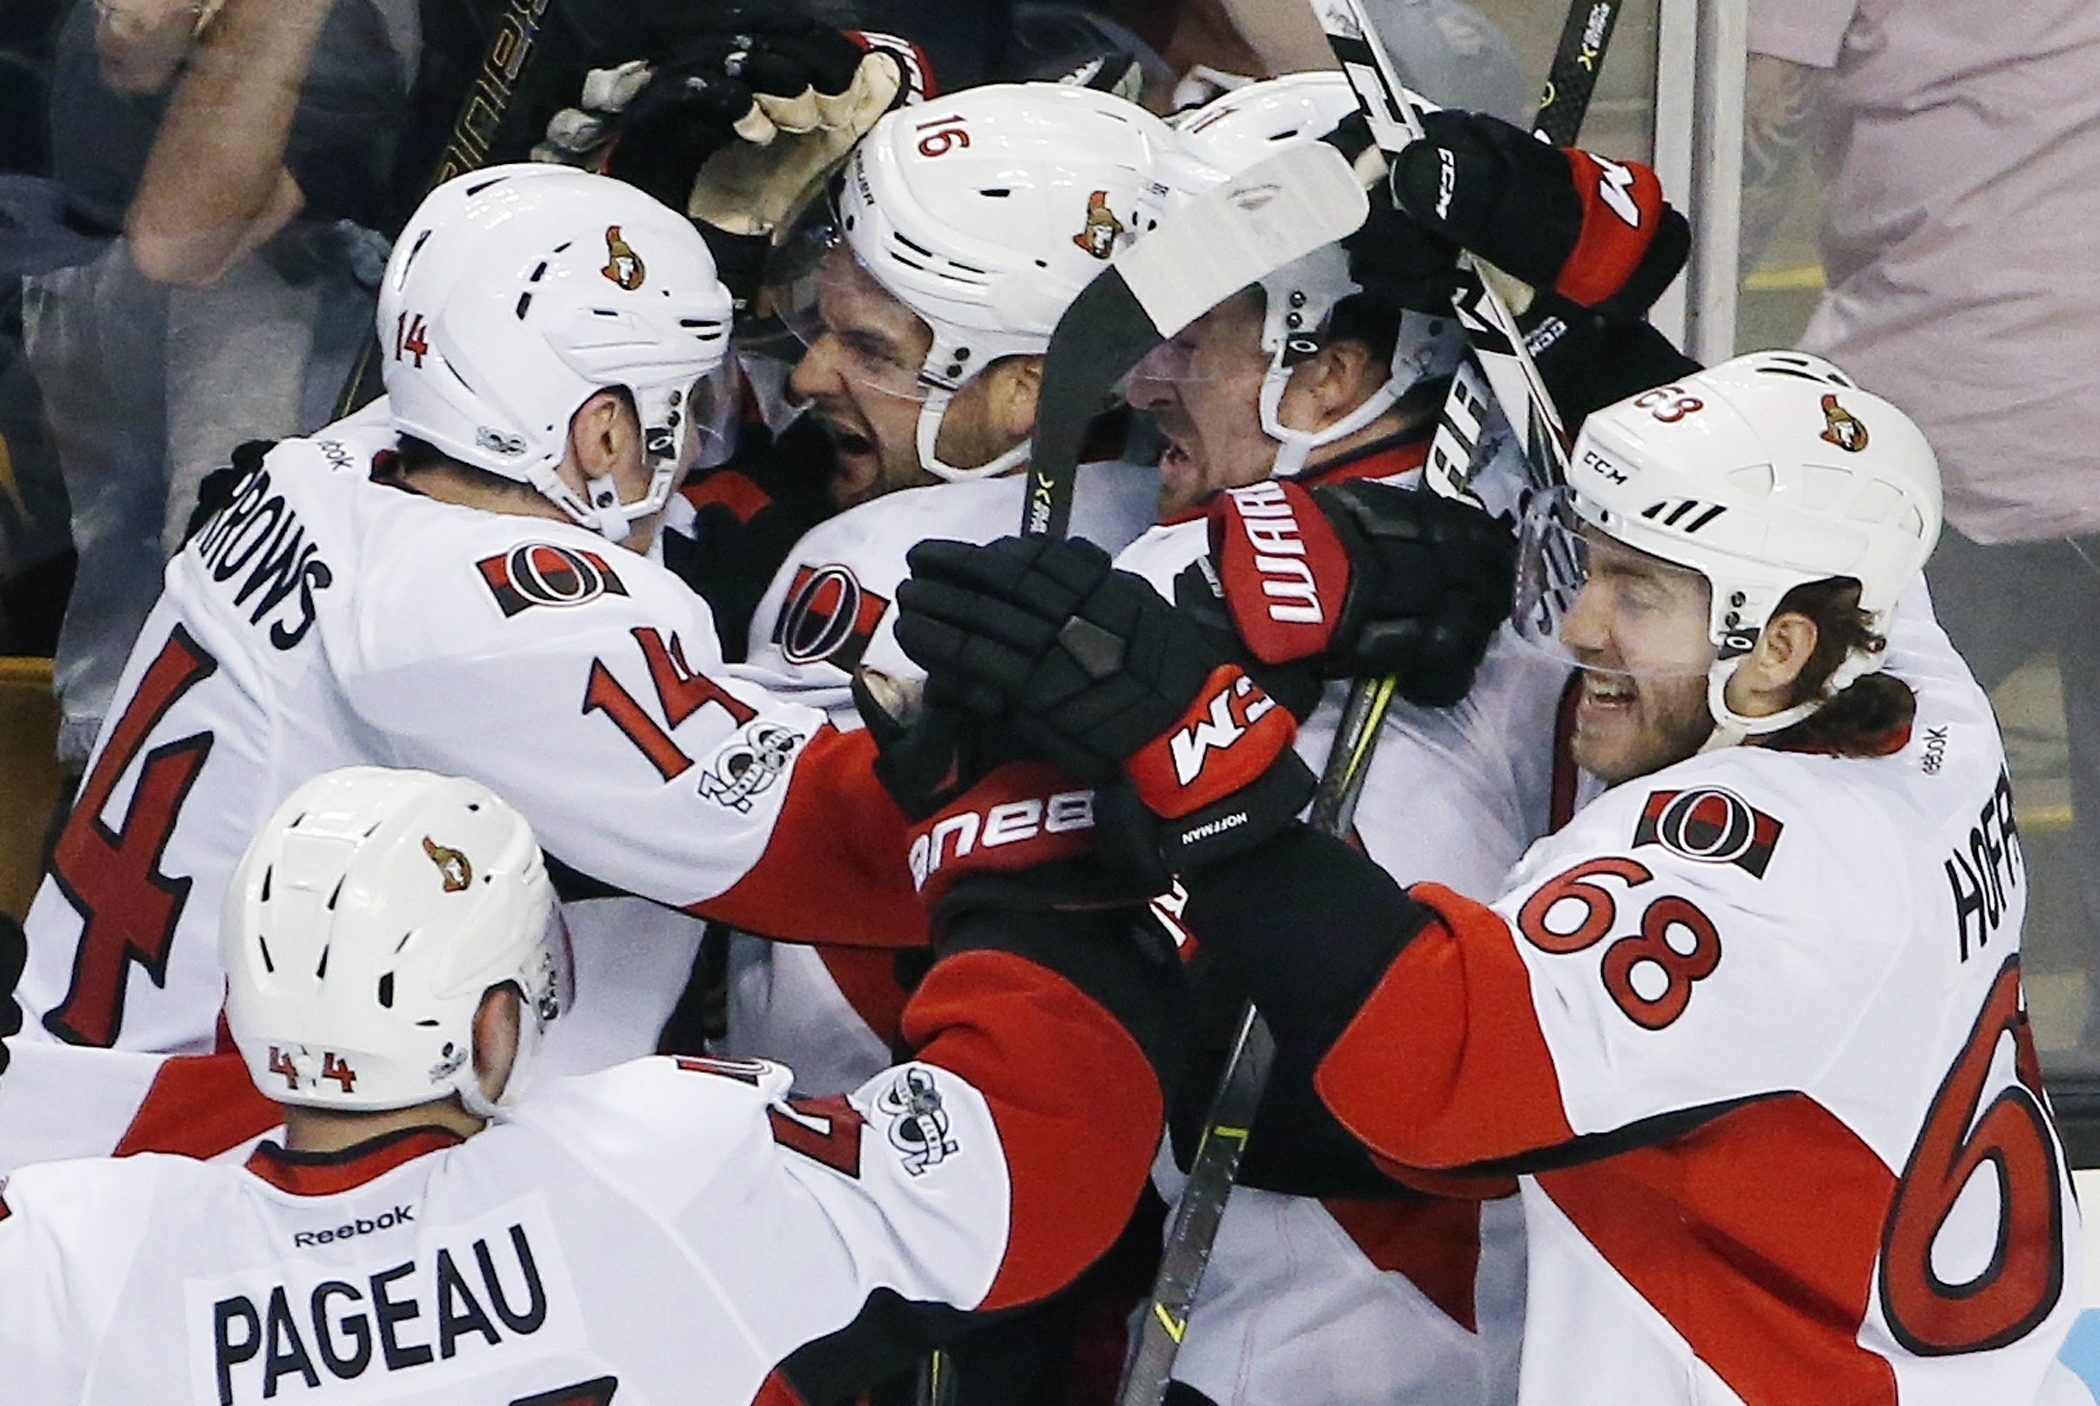 The Ottawa Senators including, Clarke MacArthur (16), Alex Burrows (14), Mike Hoffman (68) and Jean-Gabriel Pageau (44) celebrate after defeating the Boston Bruins 3-2 during overtime in game six of a first-round NHL hockey Stanley Cup playoff series, Sunday, April 23, 2017, in Boston. (AP Photo/Michael Dwyer)